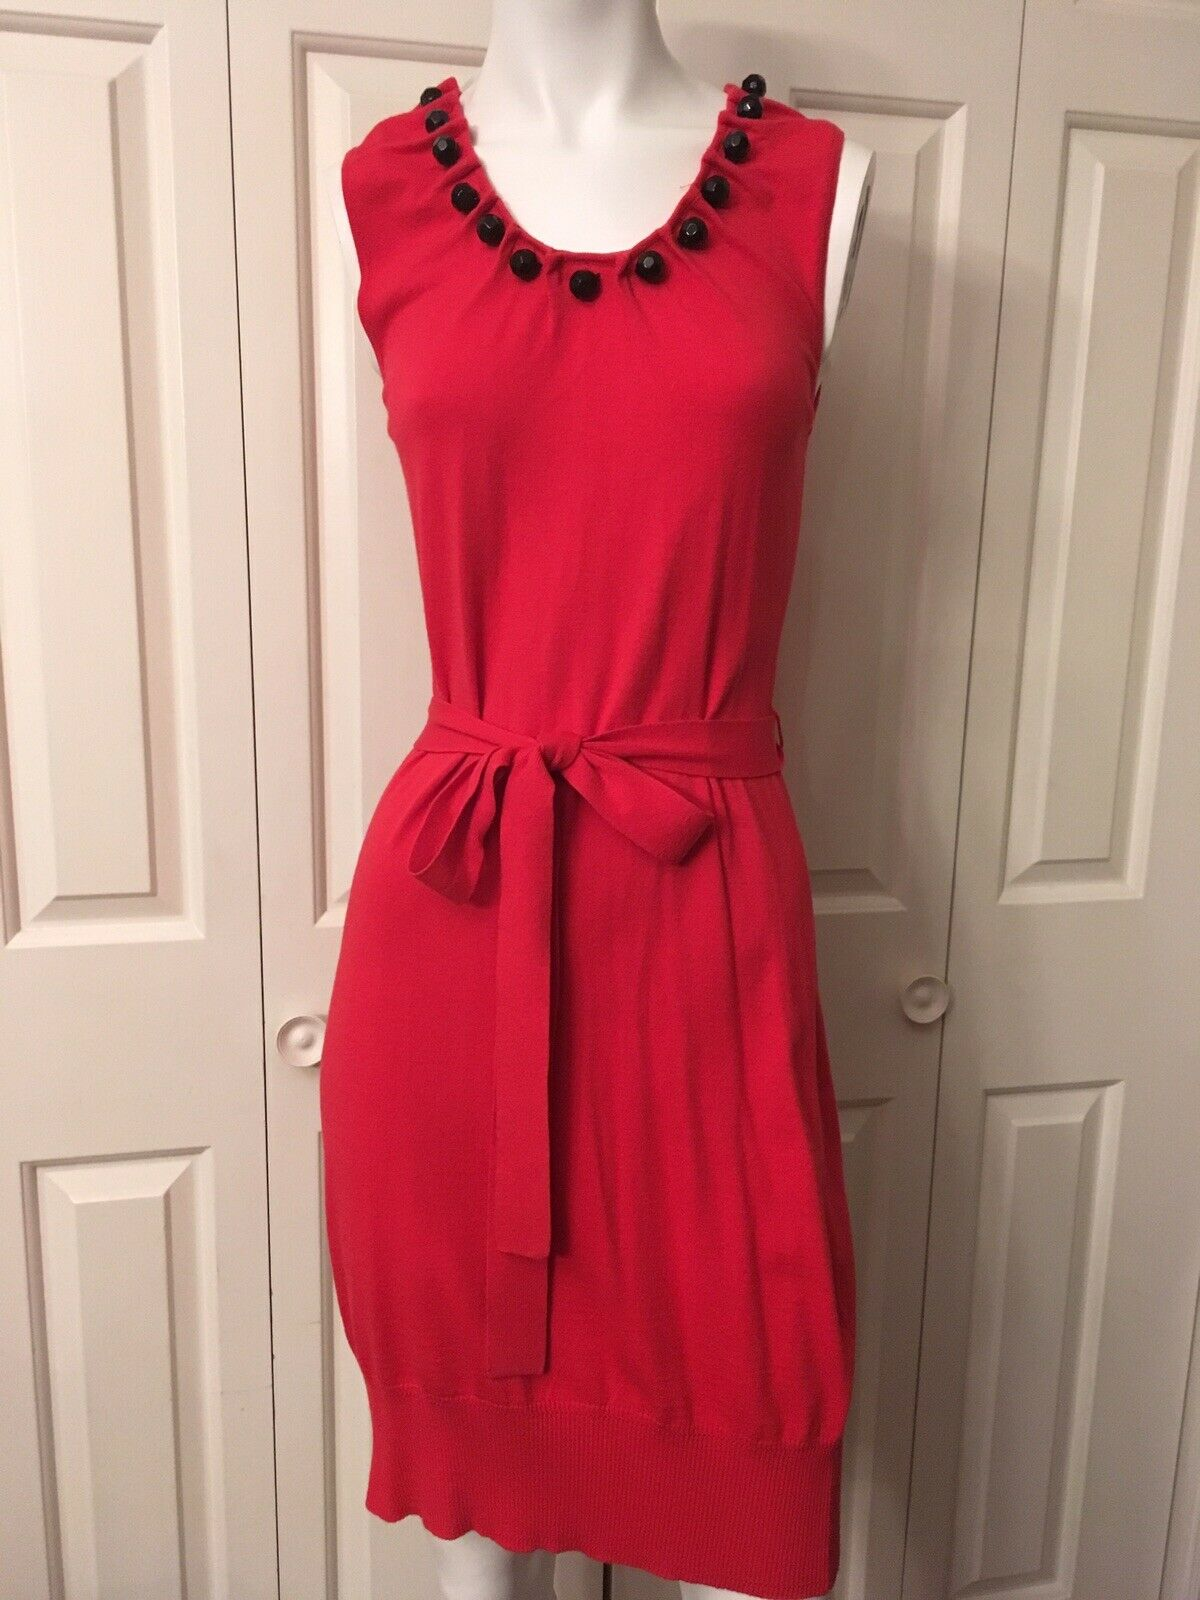 Milly rot Knit Dress Fitted Viscose Blend Round Faceted Buttons Sz S 0 2